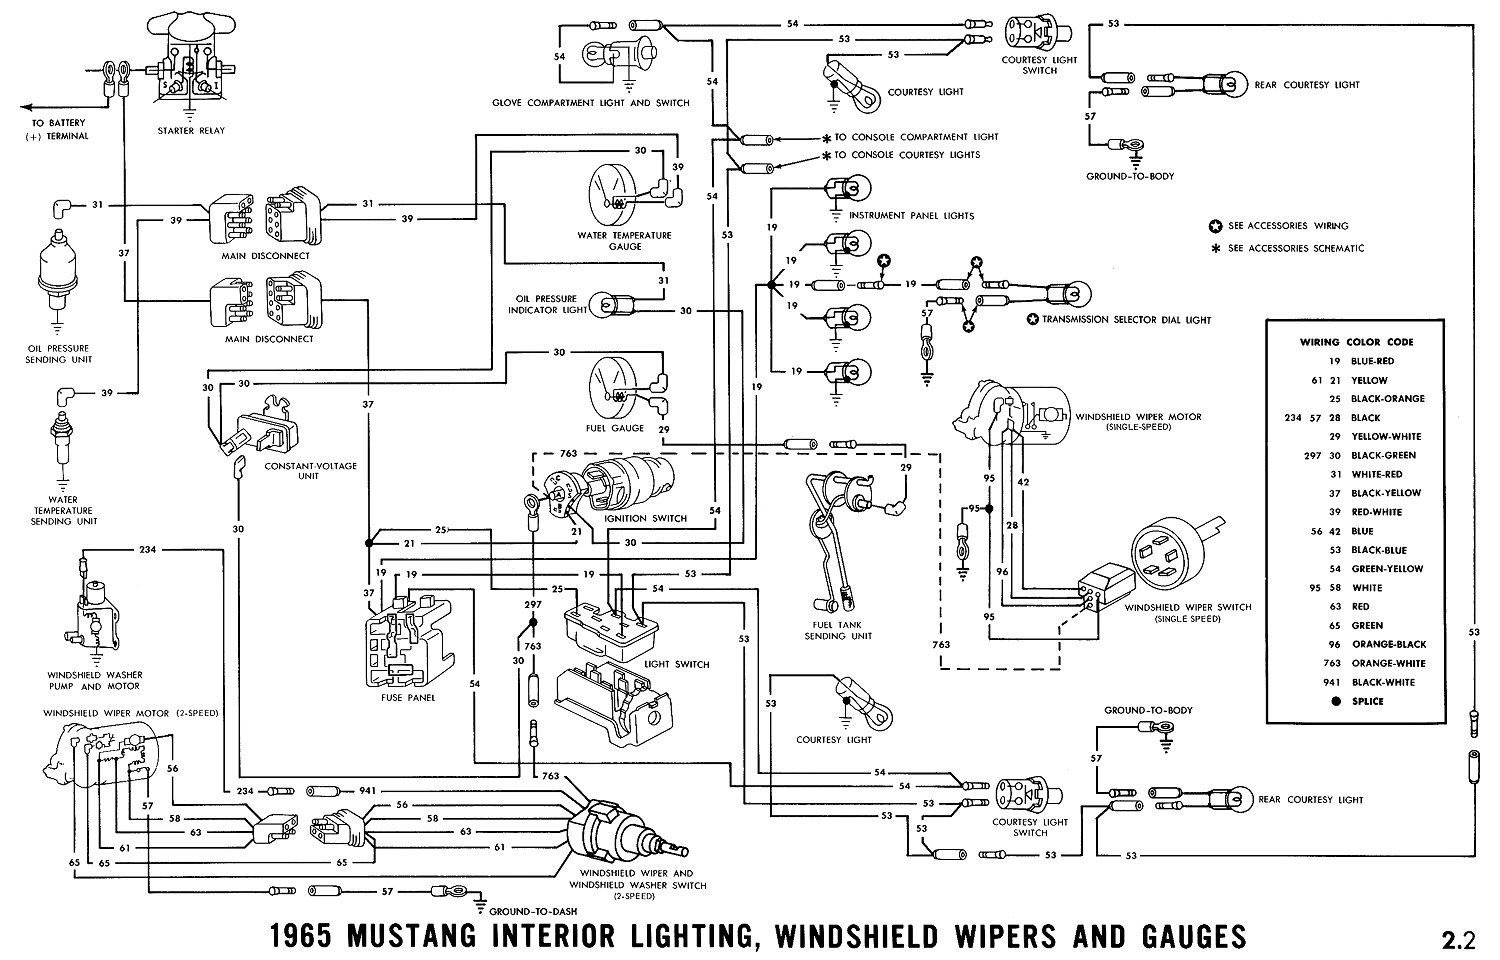 1965 Mustang Wiring Diagrams - Average Joe Restoration on 2012 honda wiring diagram, 2012 peterbilt models, peterbilt parts diagram, 2003 international 4400 electrical diagram, 2012 gmc wiring diagram, peterbilt engine diagram, peterbilt transmission diagram, 2012 ud wiring diagram, 2012 international truck wiring diagram, 2012 peterbilt tractor, 2012 mazda 3 wiring diagram, 2012 peterbilt manual, 2012 ford wiring diagram, peterbilt fuel diagram, peterbilt ignition diagram, 2012 arctic cat wiring diagram, 2012 chrysler wiring diagram, 2012 club car wiring diagram, peterbilt fuse panel diagram, 2012 dodge wiring diagram,